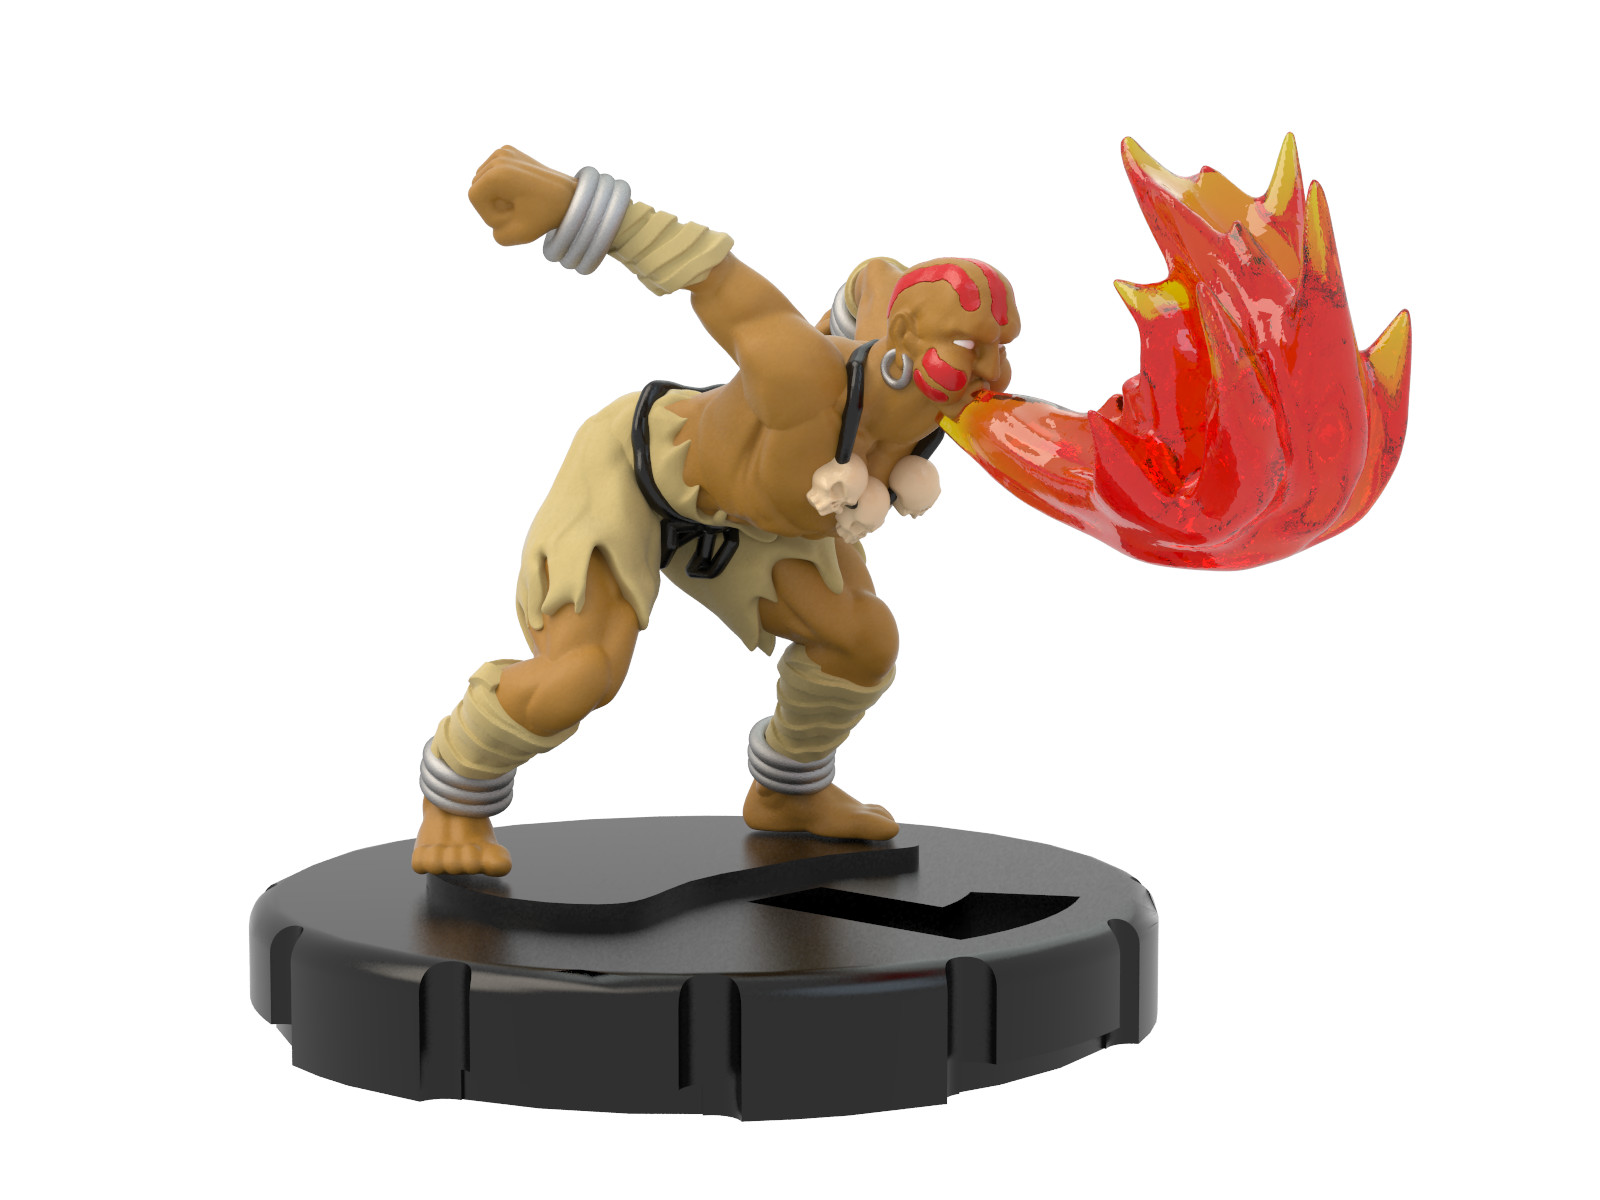 Ben misenar 019 dhalsim flame rc 1